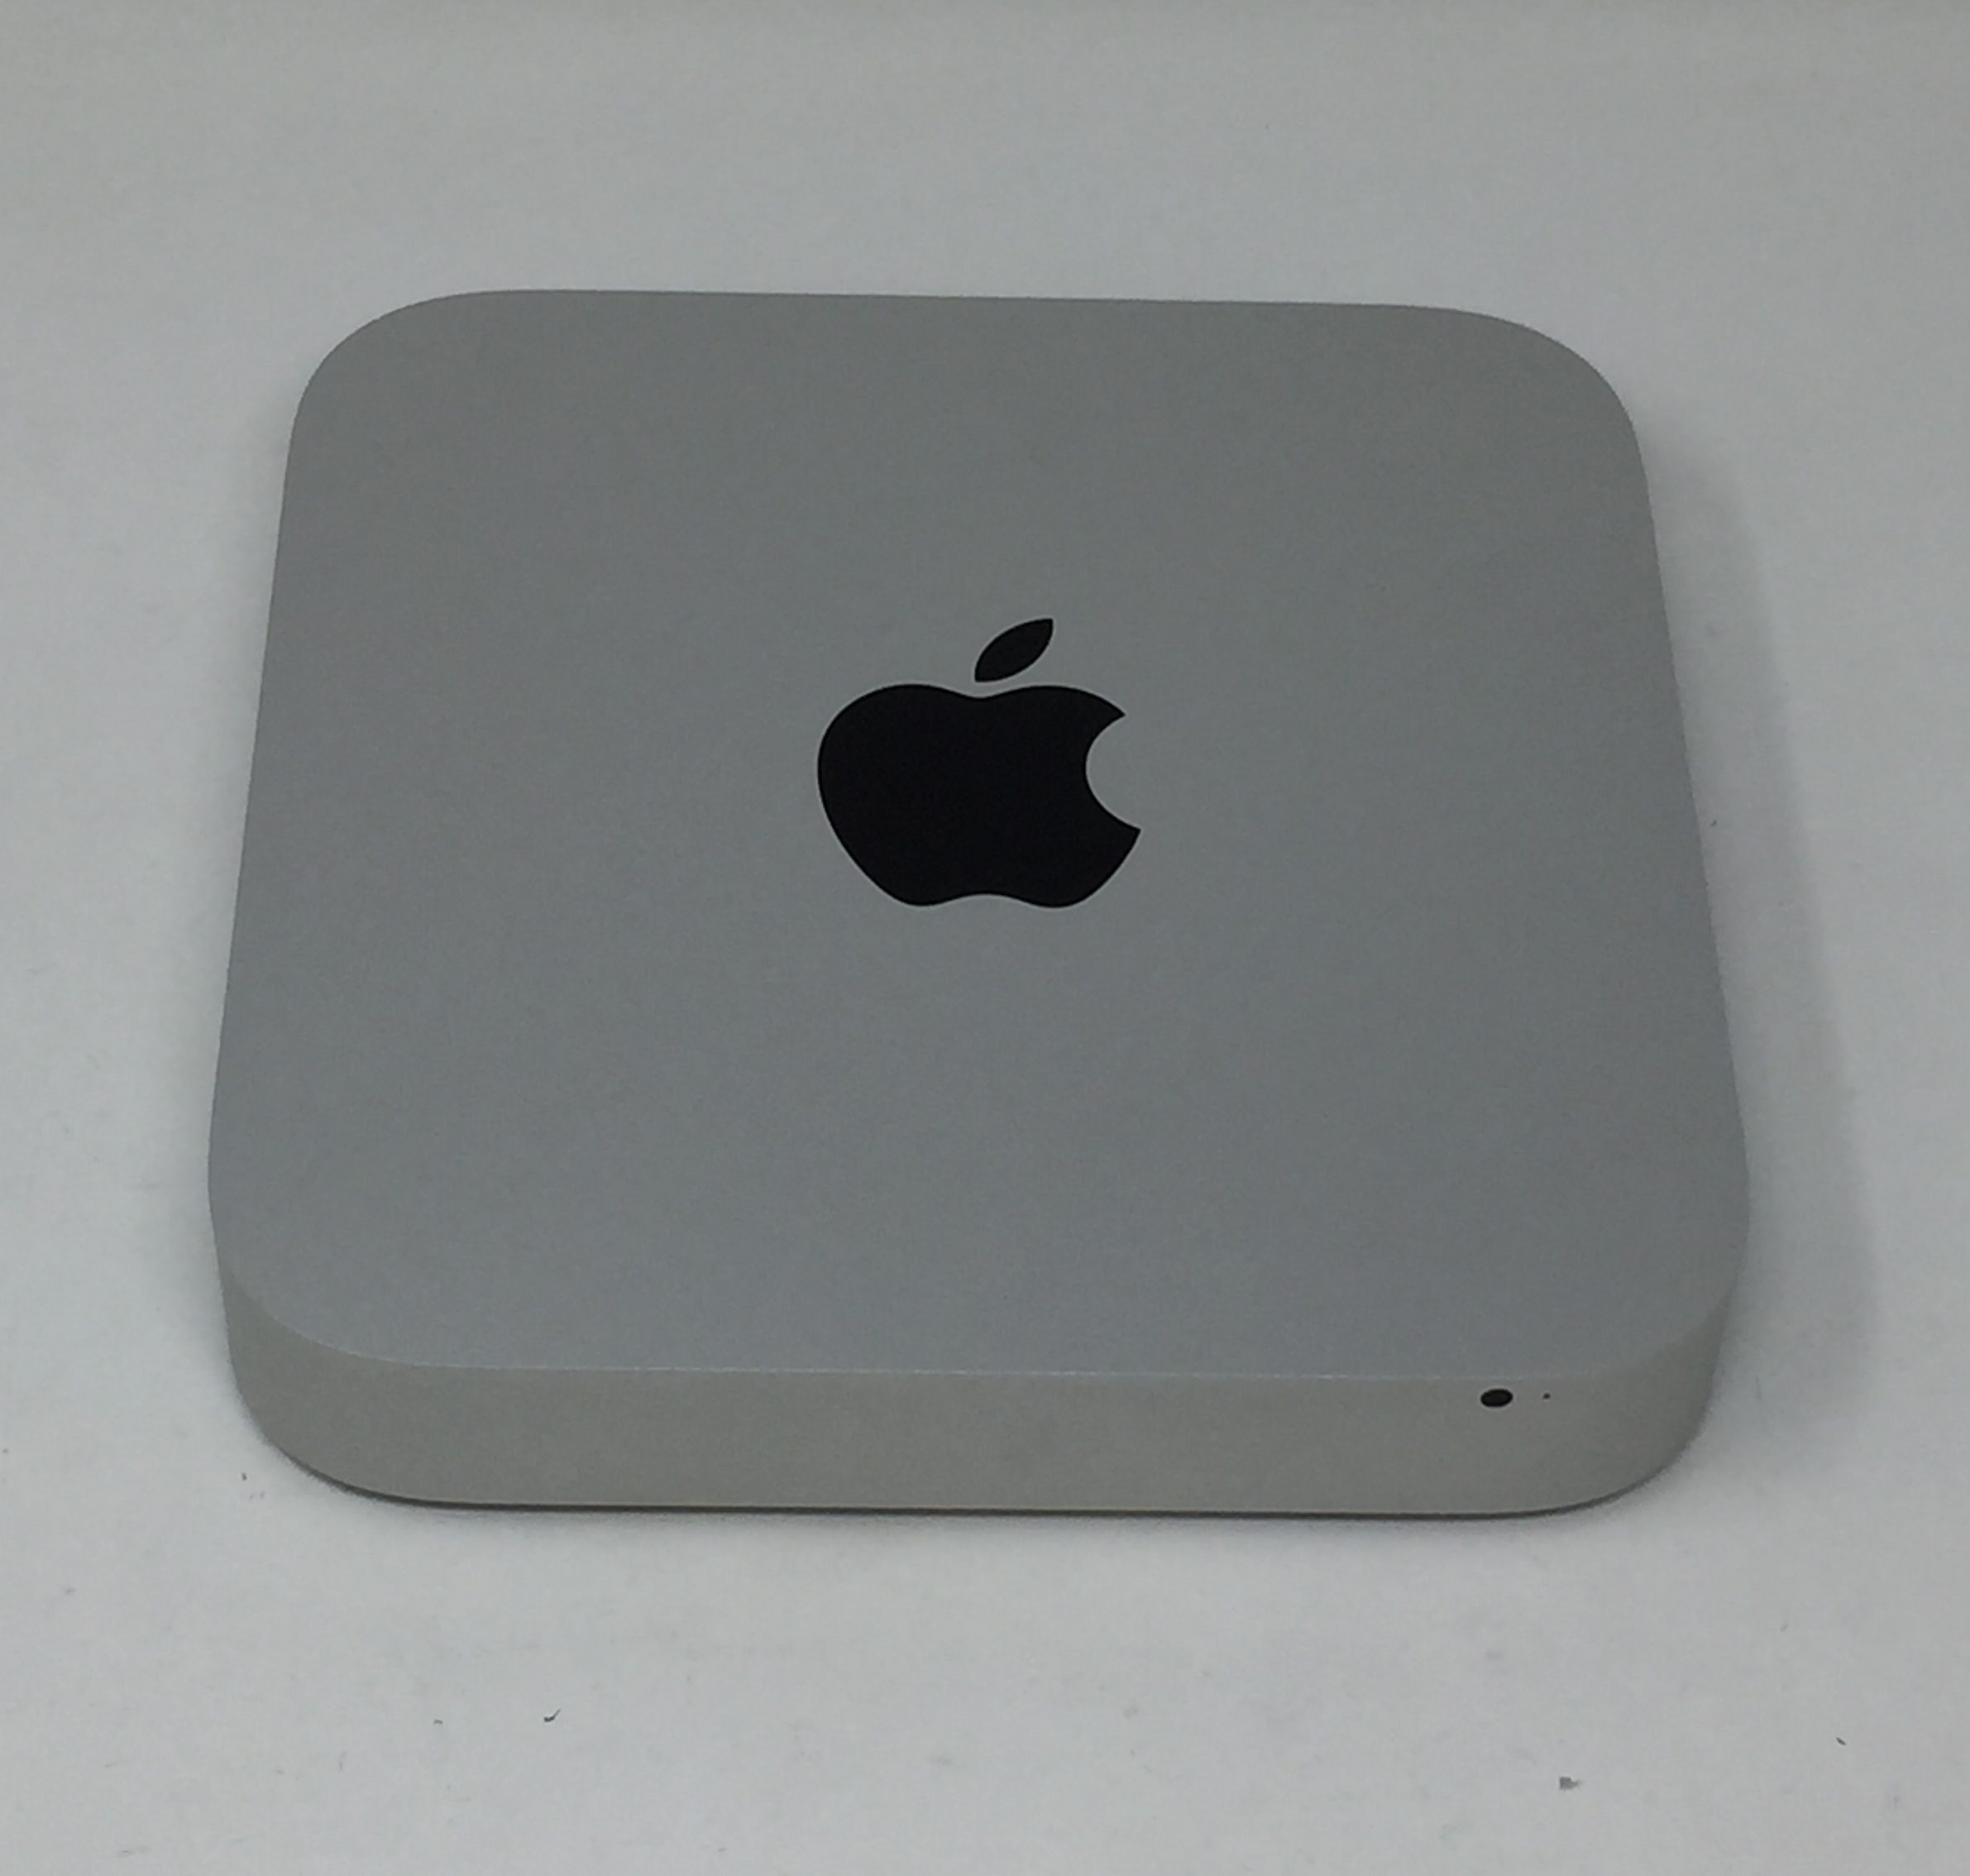 Mac Mini Late 2014 (Intel Core i5 2.8 GHz 8 GB RAM 1 TB Fusion Drive), Intel Core i5 2.8 GHz, 8 GB RAM, Fusion 1 TB HDD Y 128 GB SSD, obraz 1